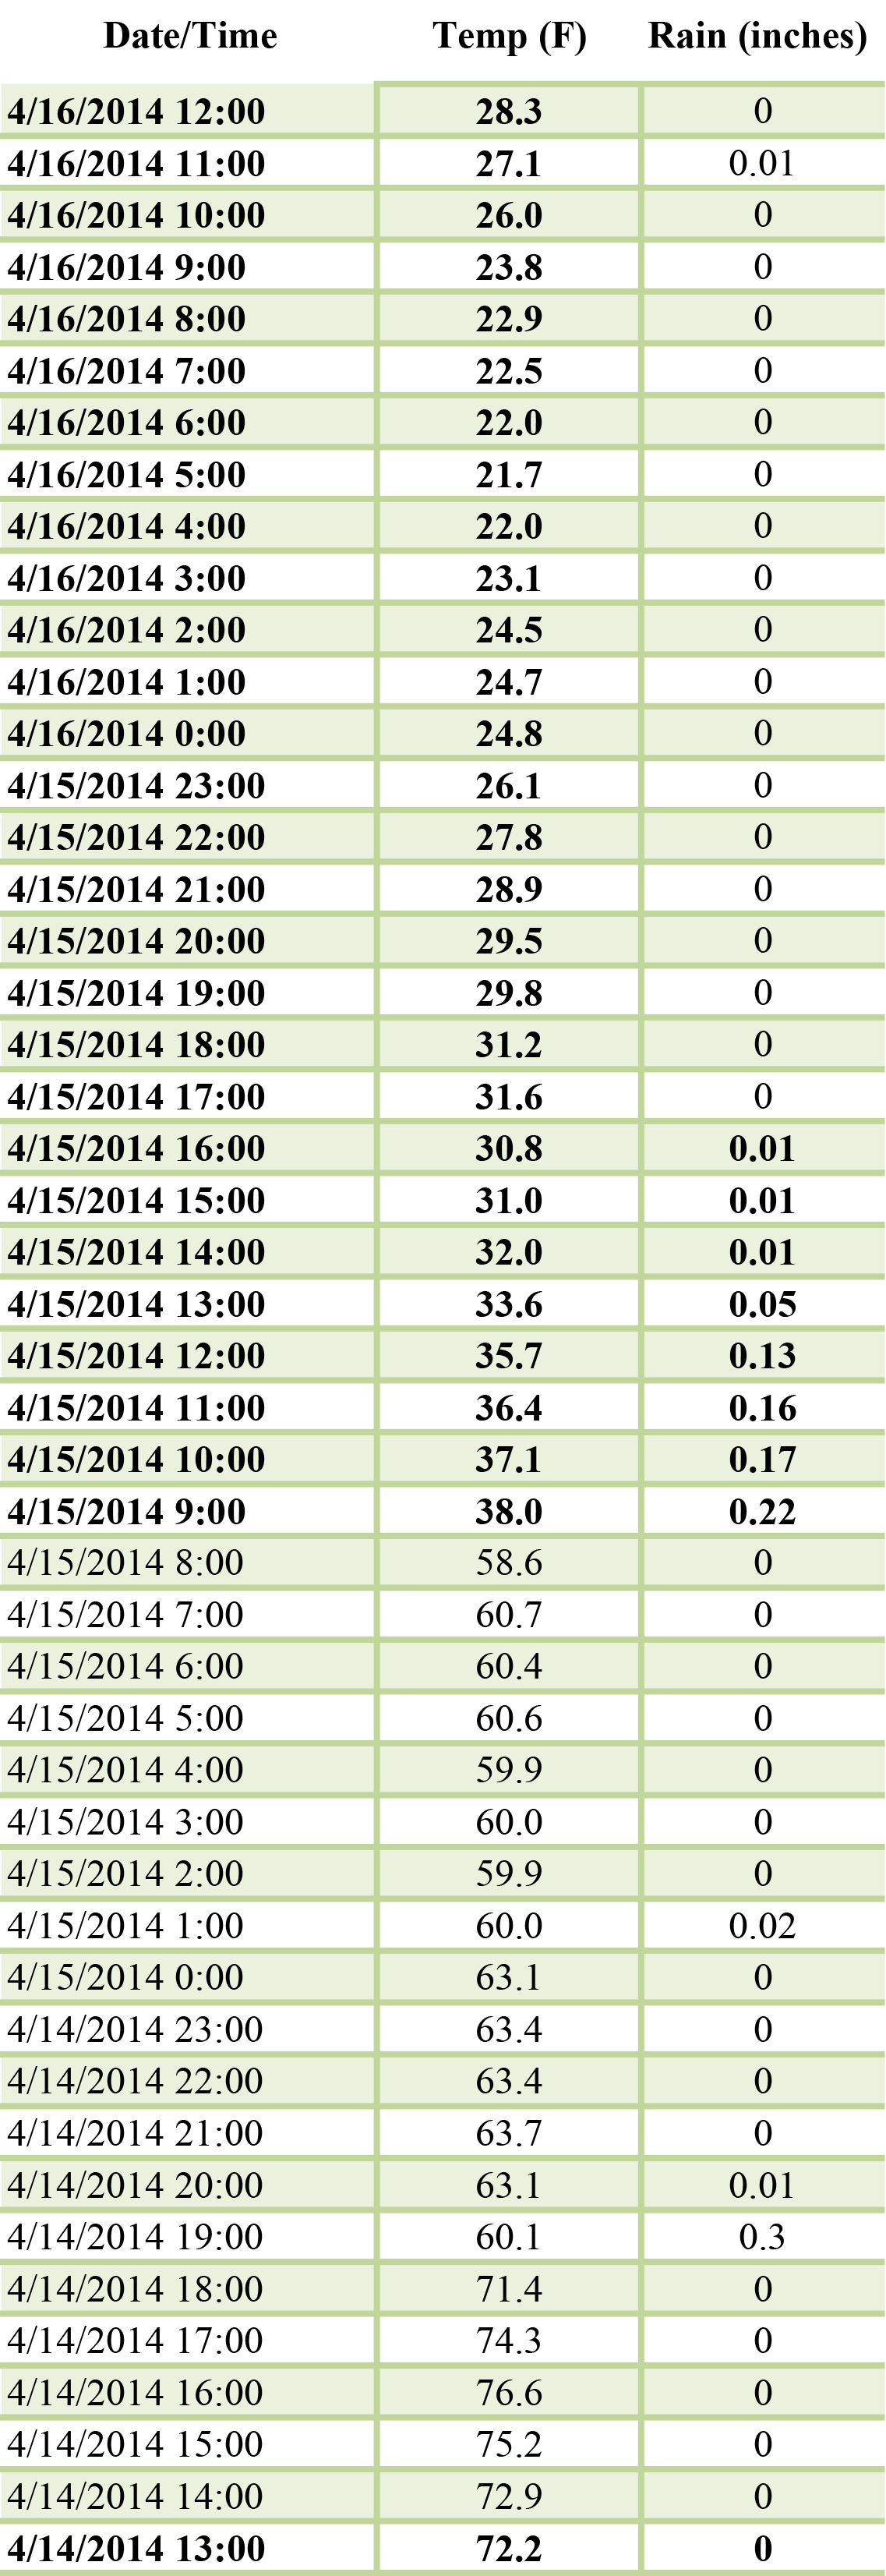 Table 3. Hourly temperature and hourly precipitation during the 48 hours after planting two corn hybrids at five planting depths on April 14 at the Aurora Research Farm (read the table from the bottom to the top to track temperature and precipitation during the first 48 hours after planting).